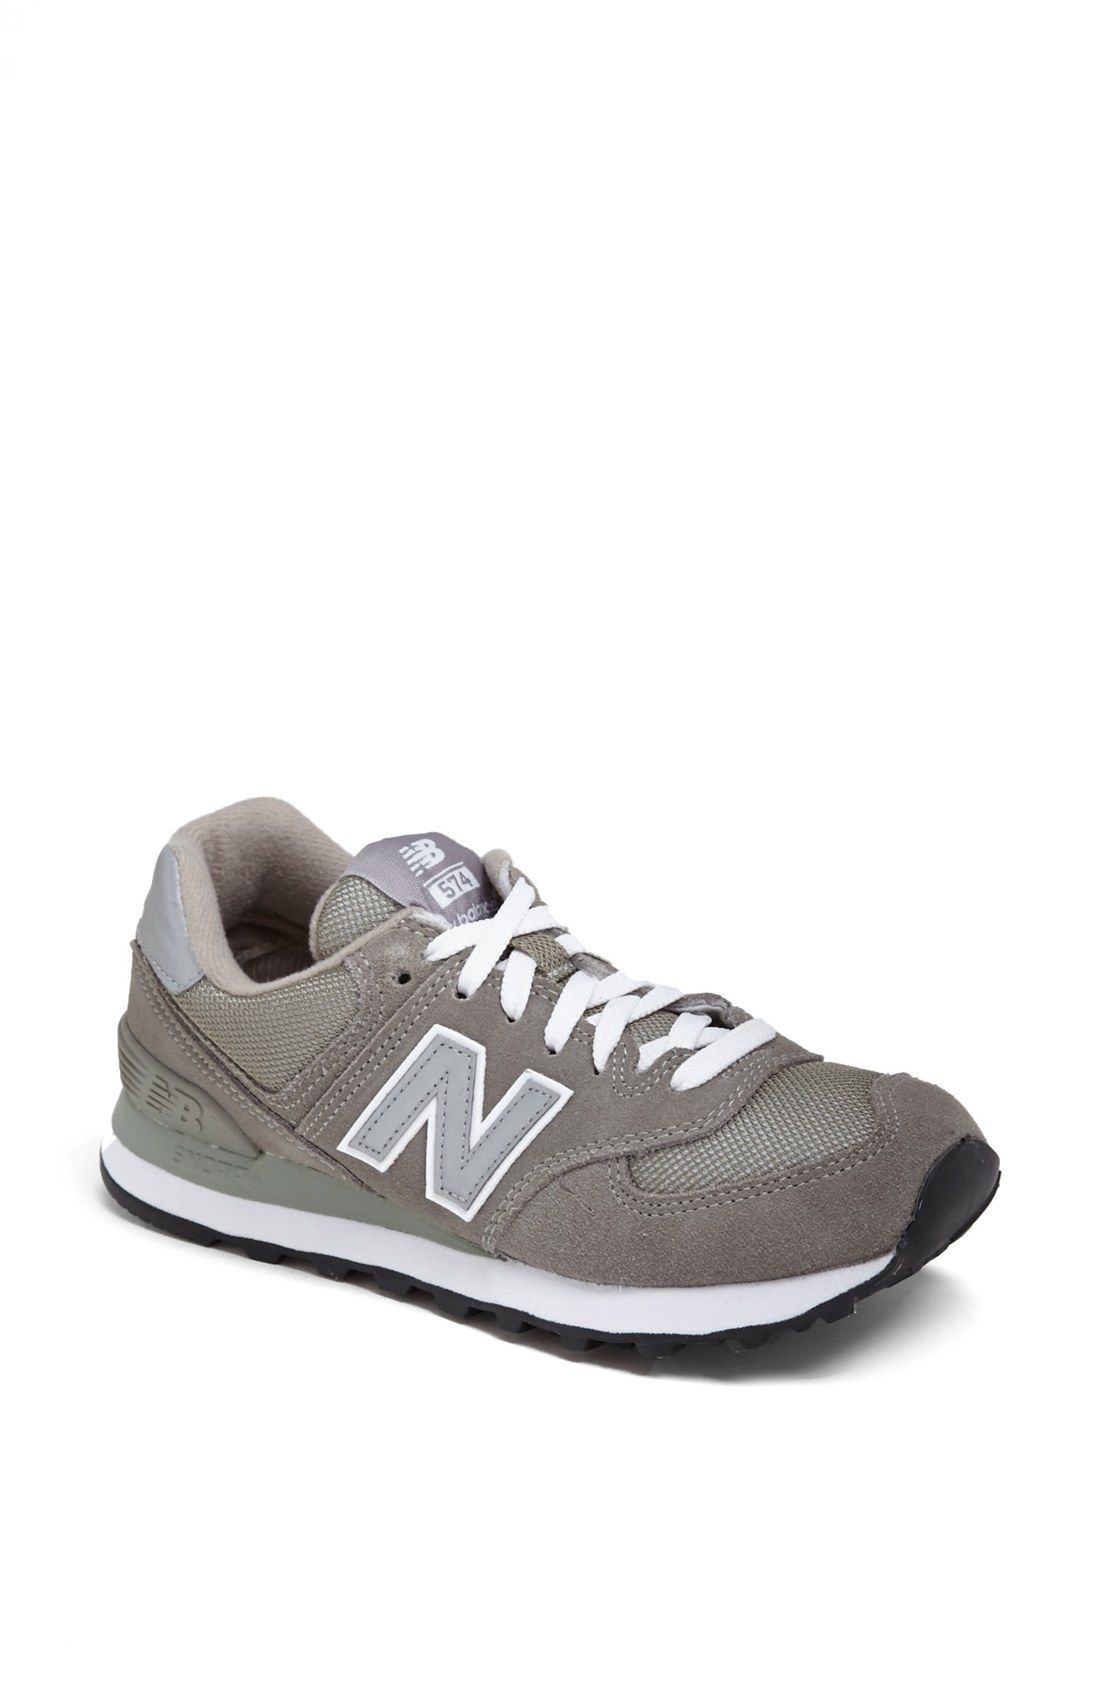 women's new balance 574 grey